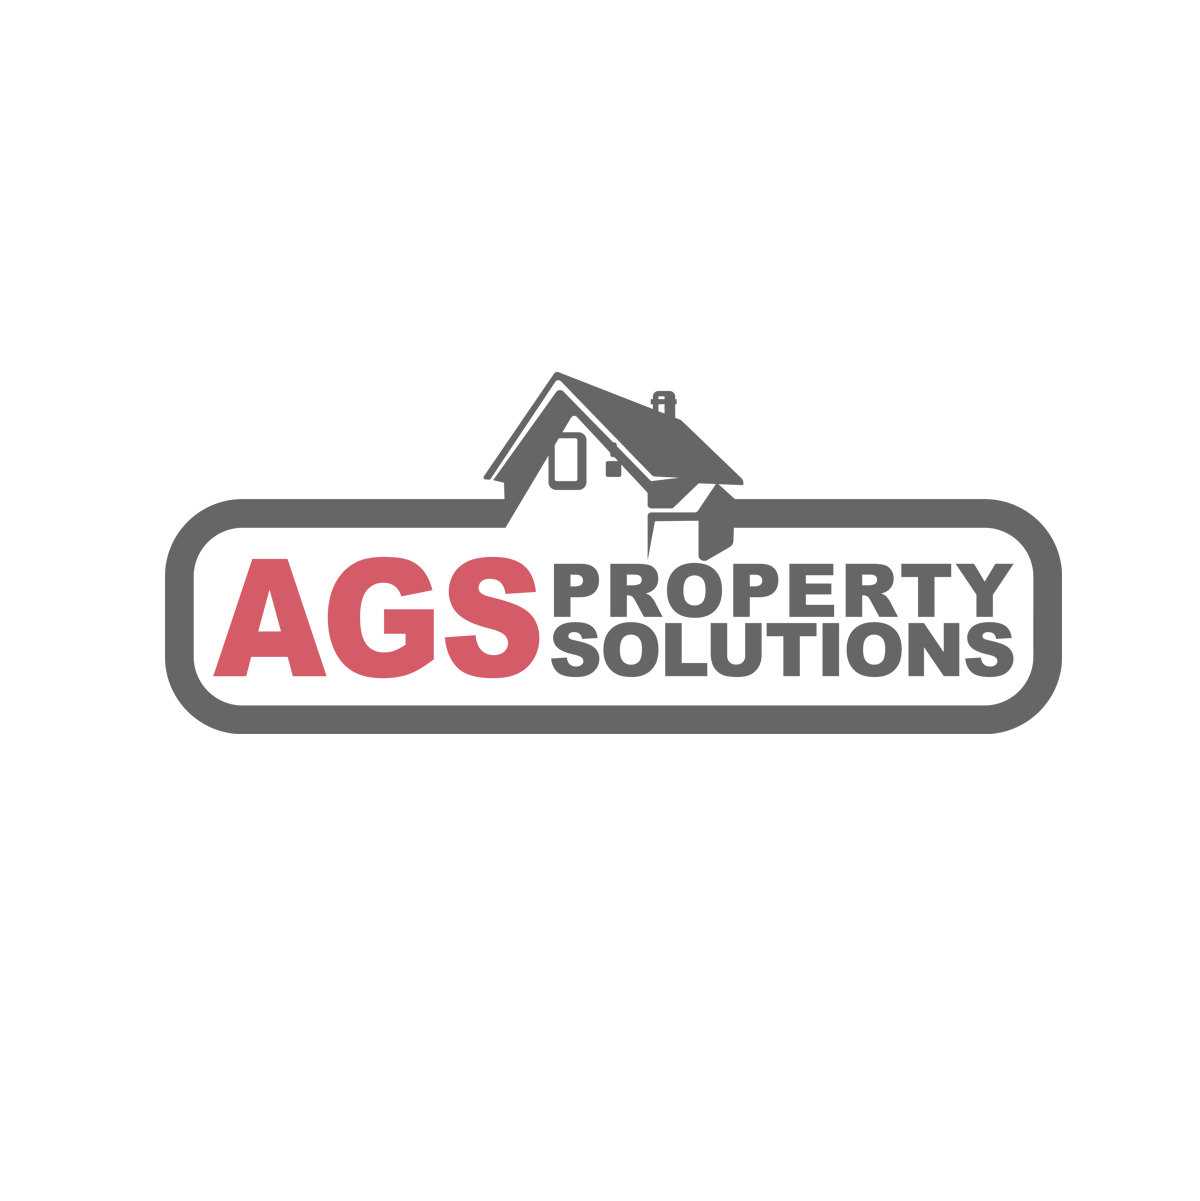 AGS Property Solutions